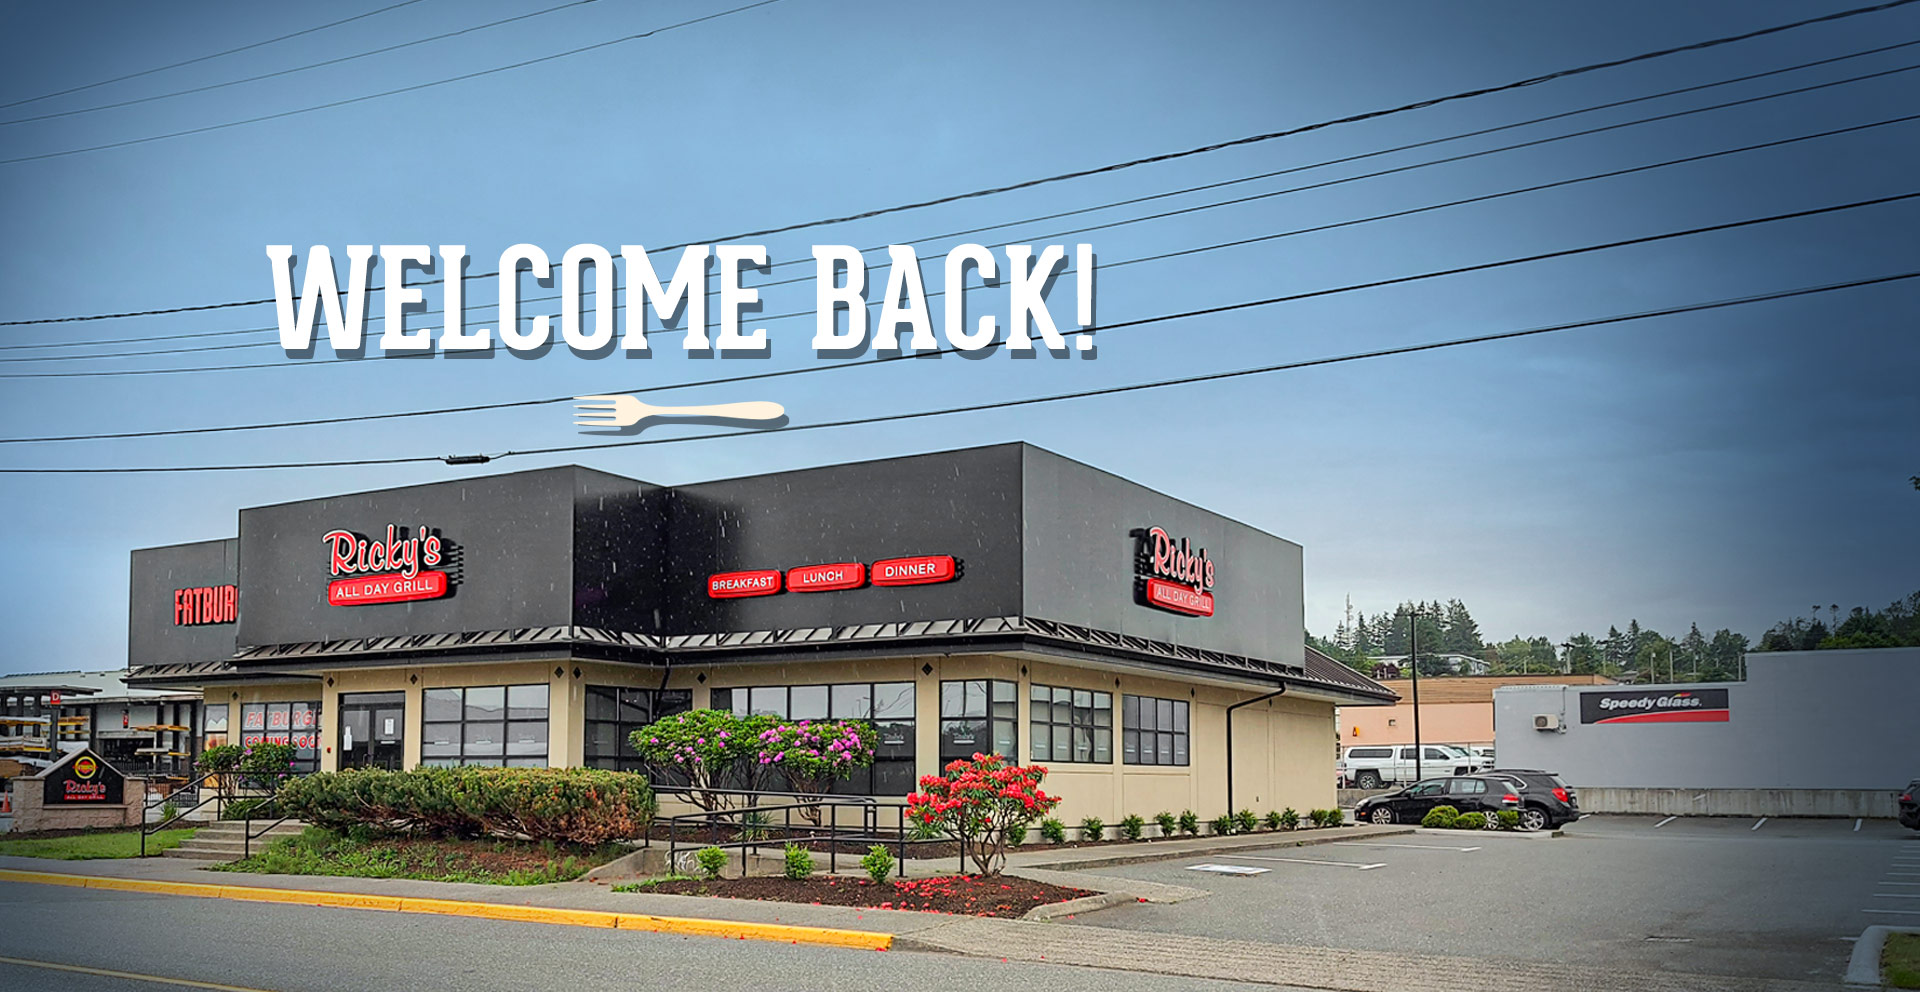 Ricky's Campbell River has a brand new look! Enjoy breakfast, lunch & dinner at our newly renovated location.